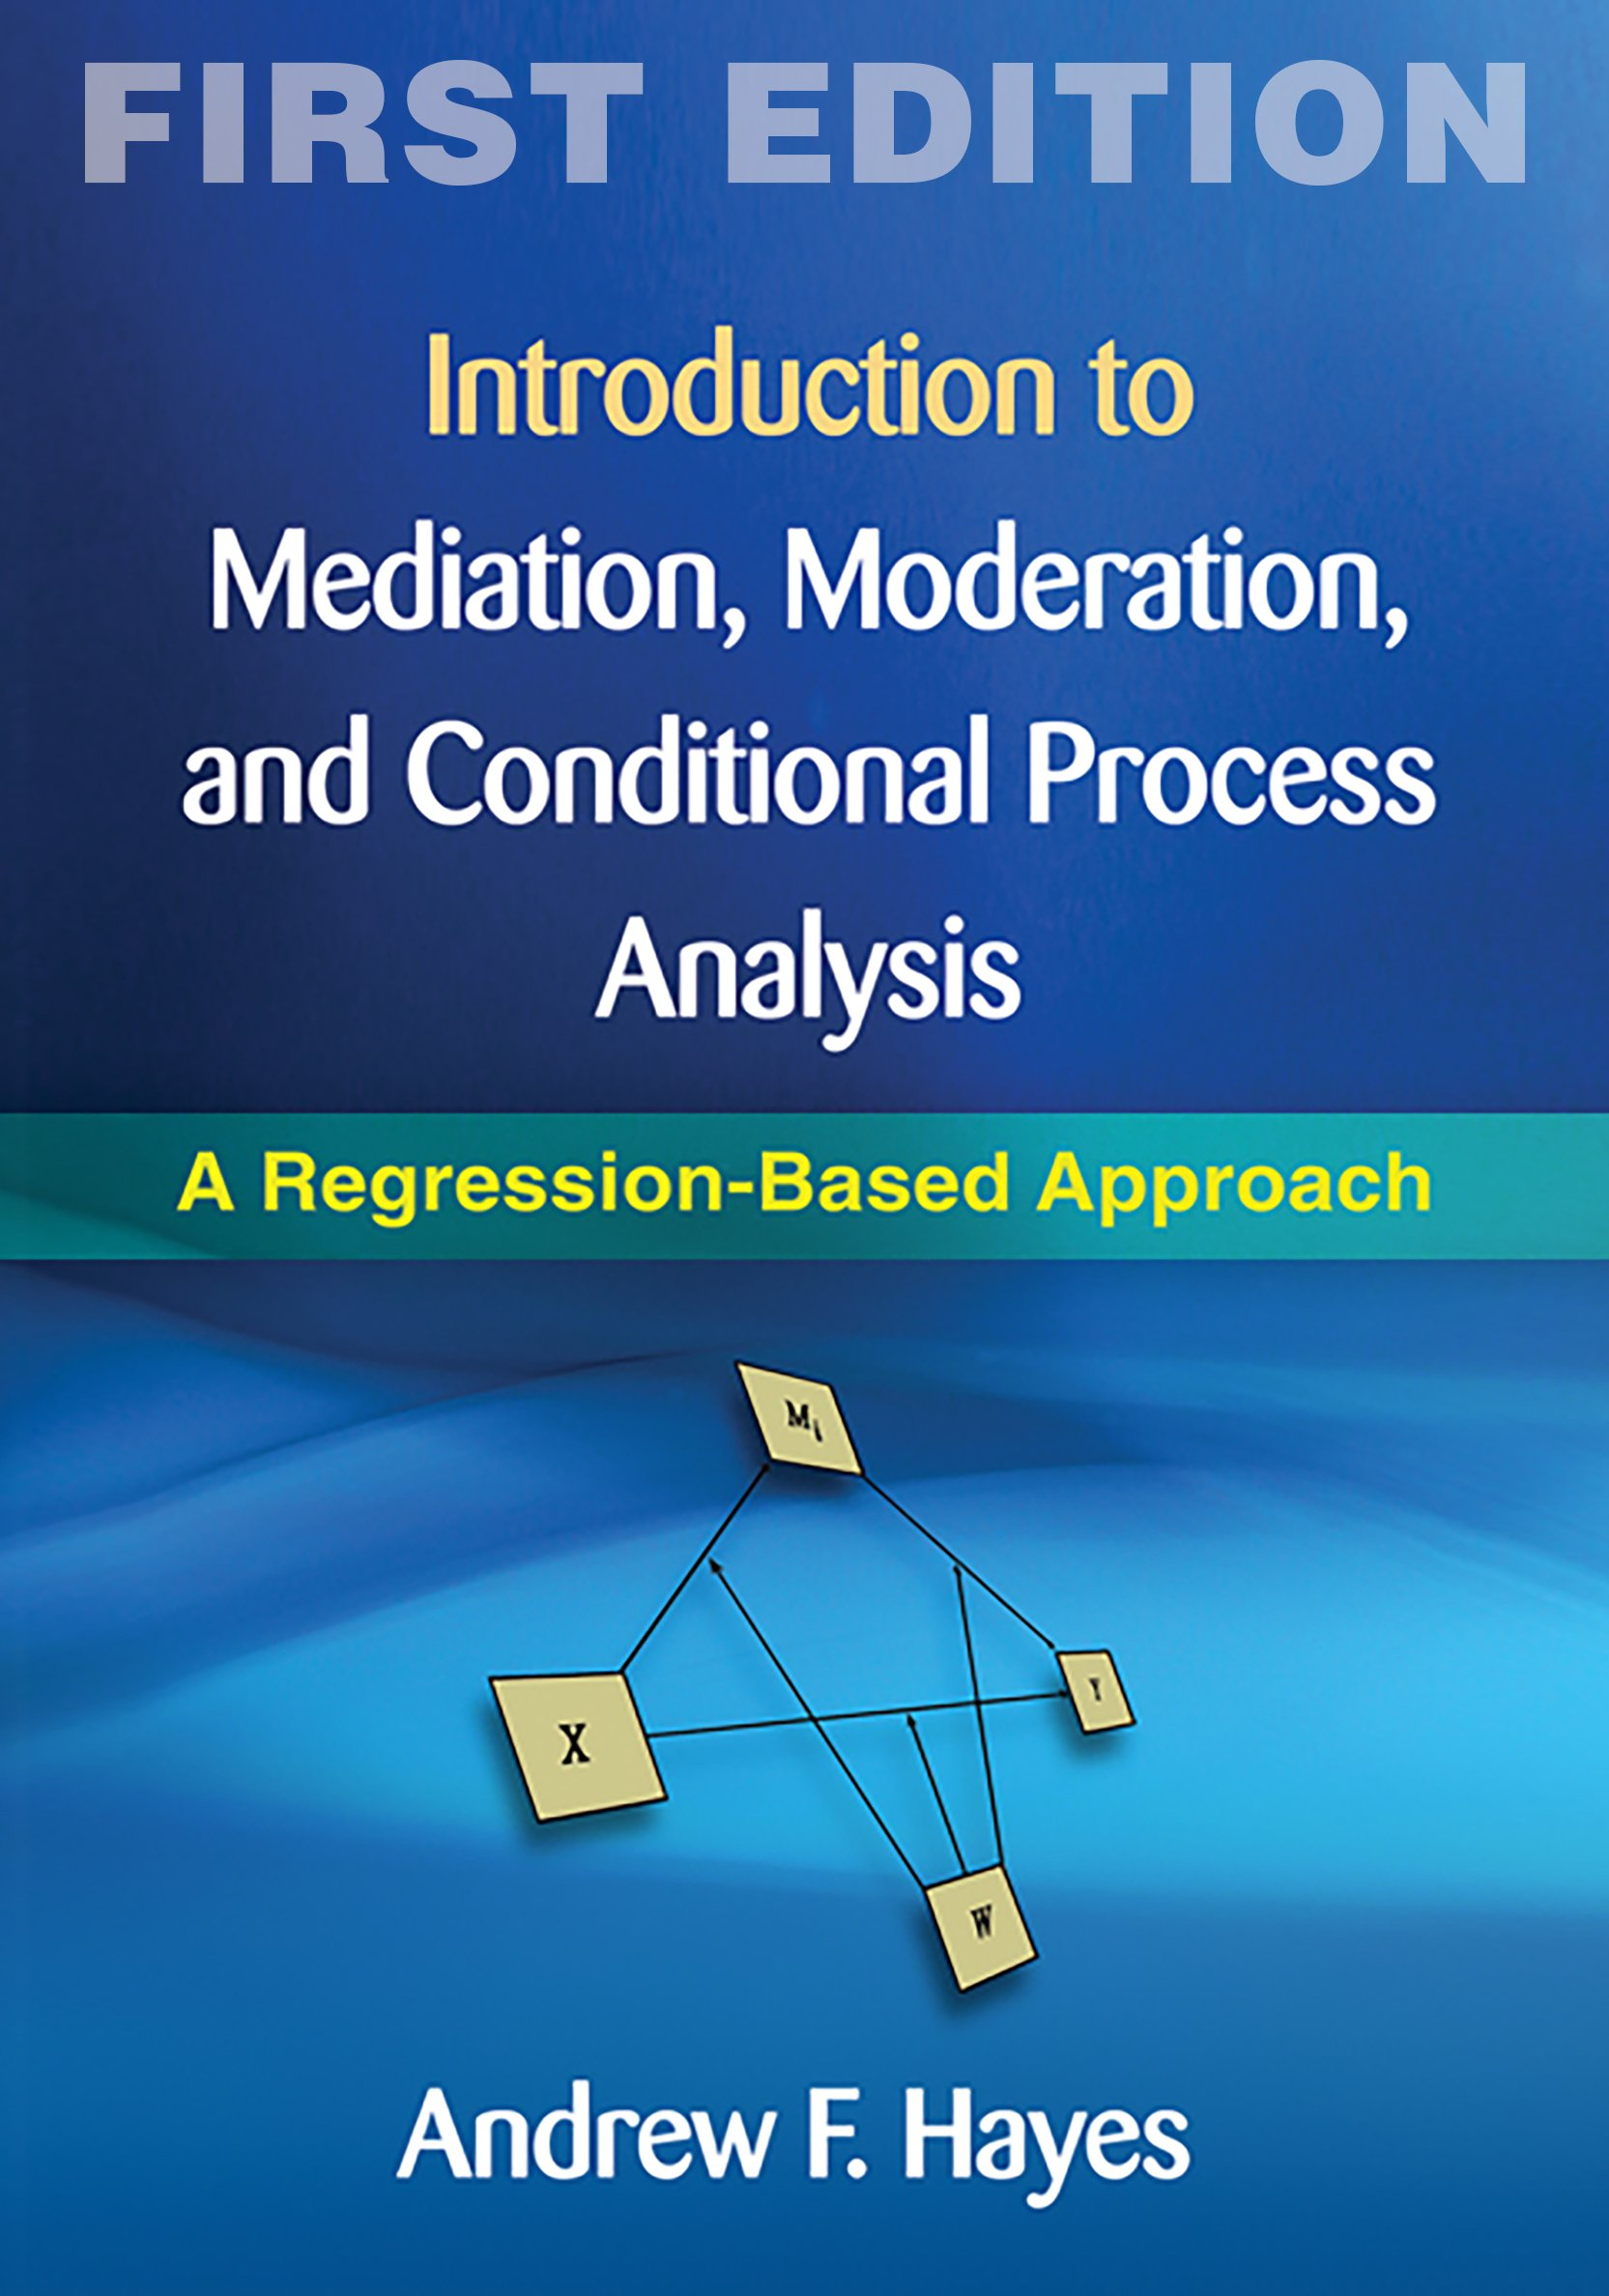 Introduction to Mediation, Moderation, and Conditional Process Analysis: A Regression-Based Approach Methodology in the Social Sciences: Amazon.es: Andrew ...